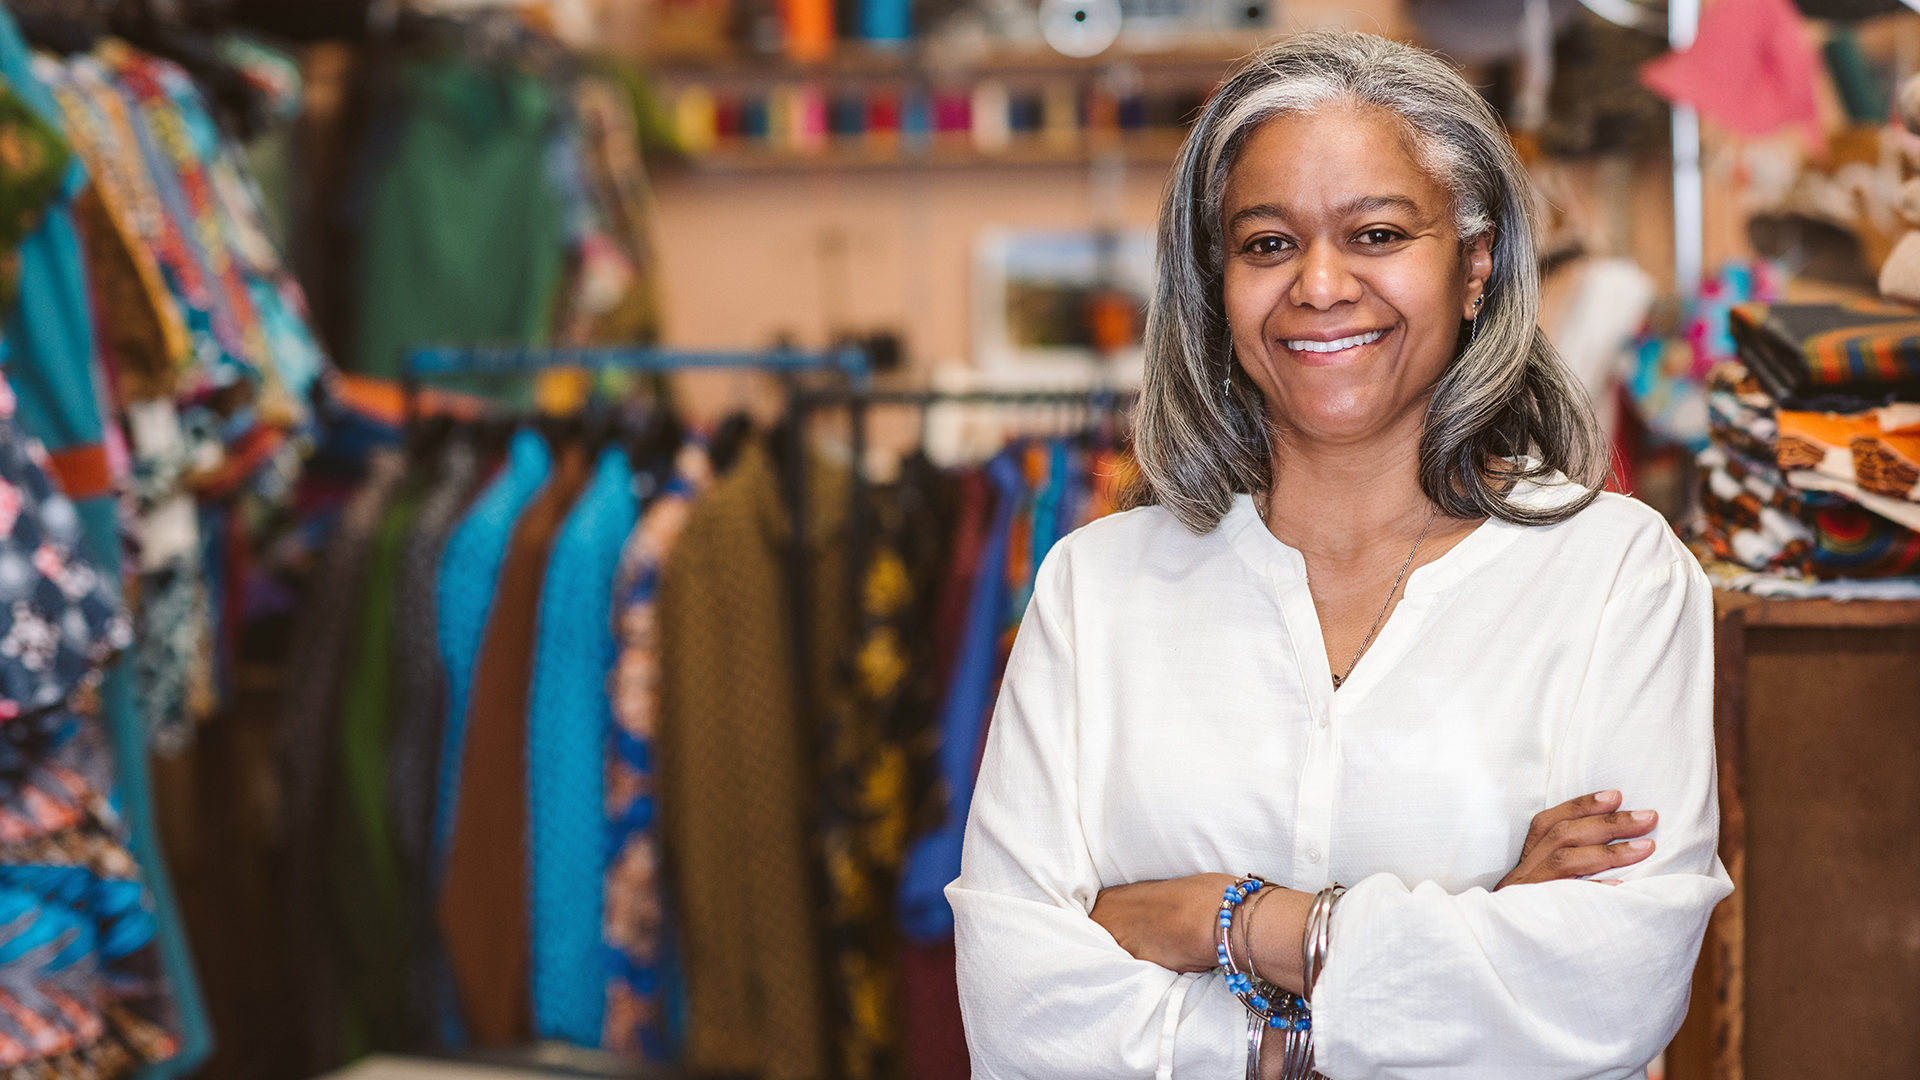 BBIF FLORIDA RECEIVES $500,000 GRANT FROM WELLS FARGO  TO SPARK SMALL BUSINESS GROWTH